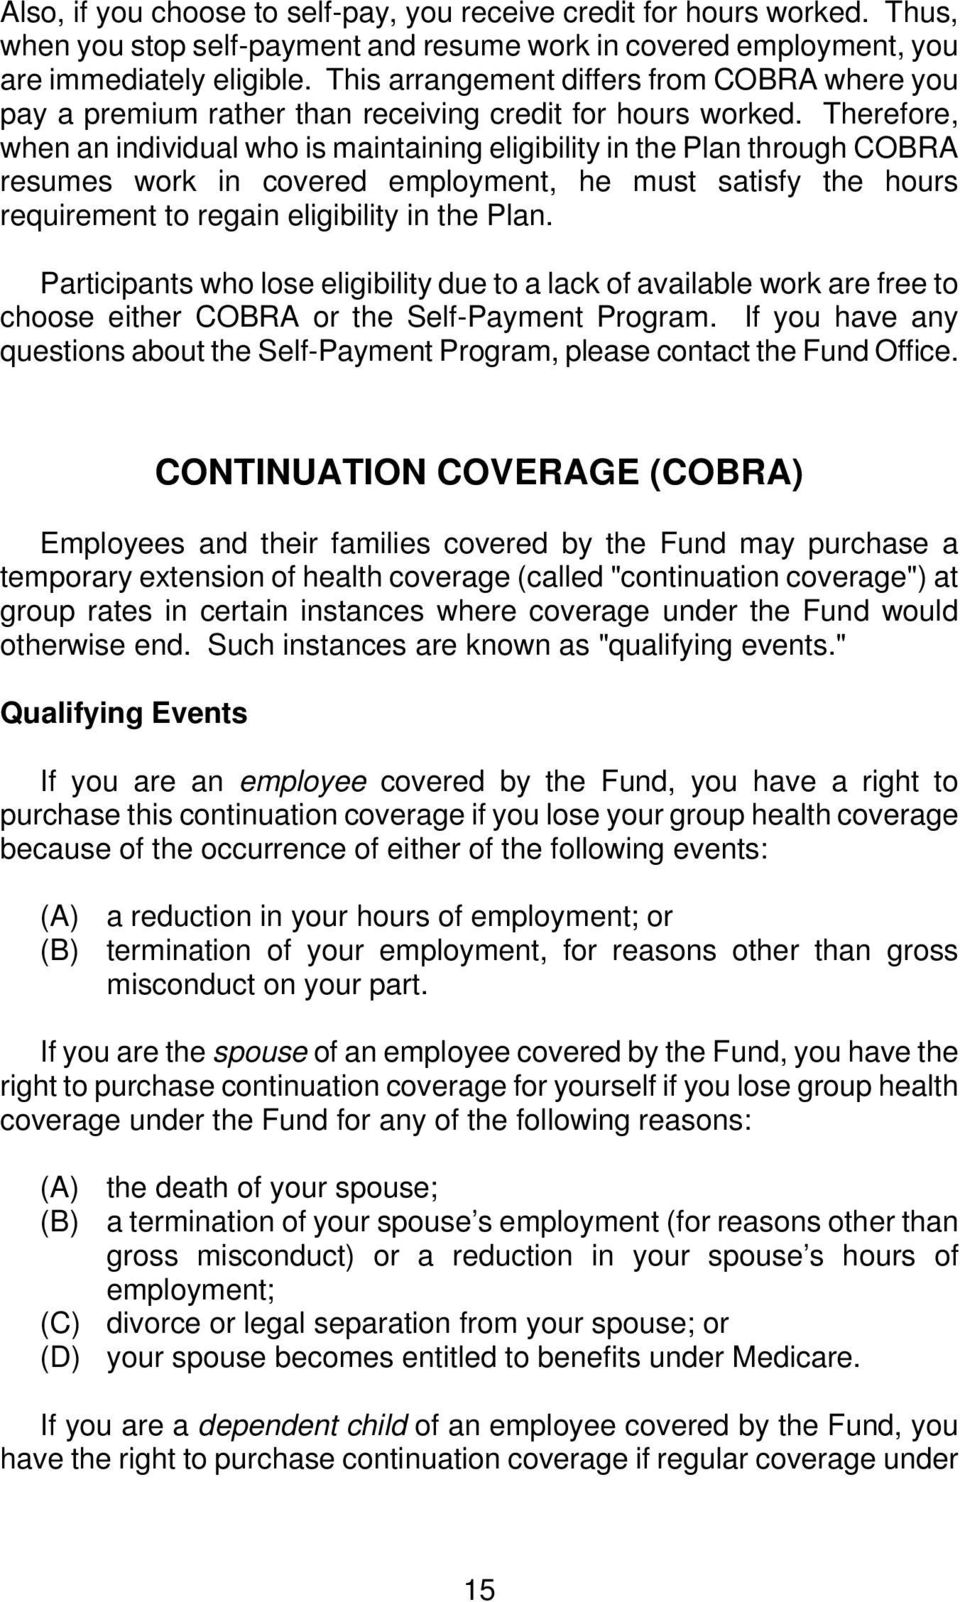 Therefore, when an individual who is maintaining eligibility in the Plan through COBRA resumes work in covered employment, he must satisfy the hours requirement to regain eligibility in the Plan.